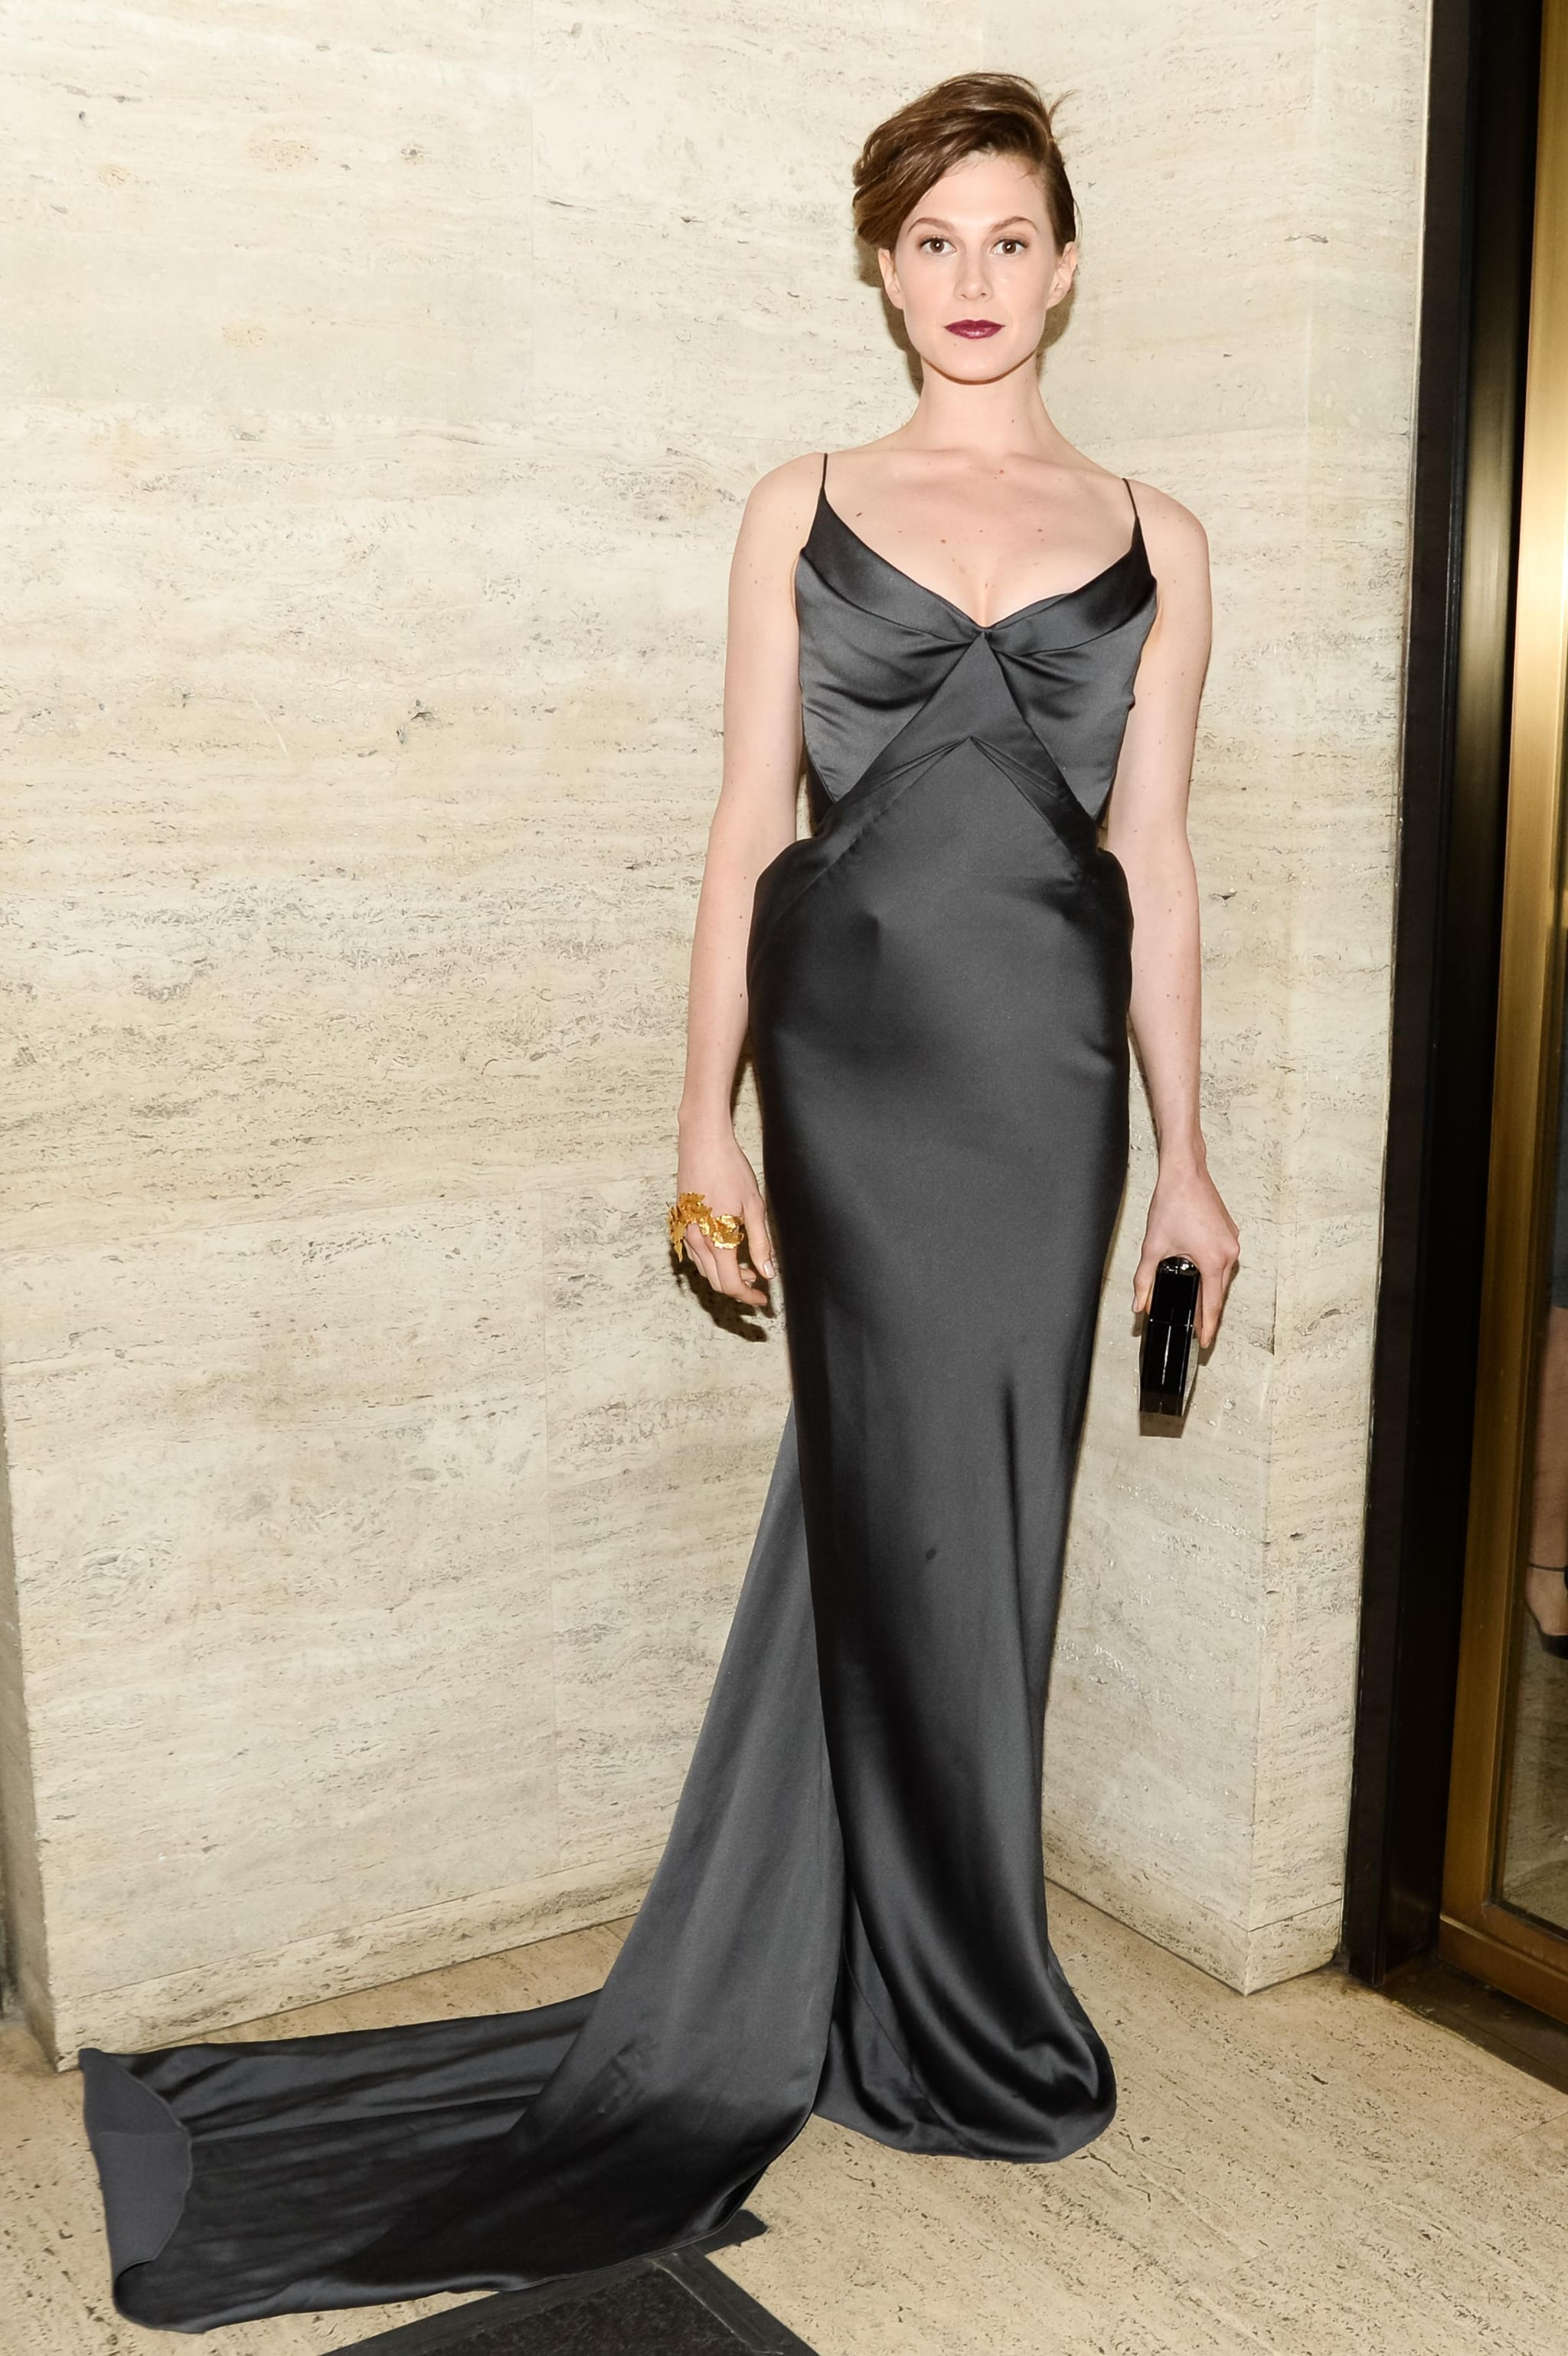 Elettra Wiedemann slinked into a black column for the American Ballet Theatre's opening night gala.